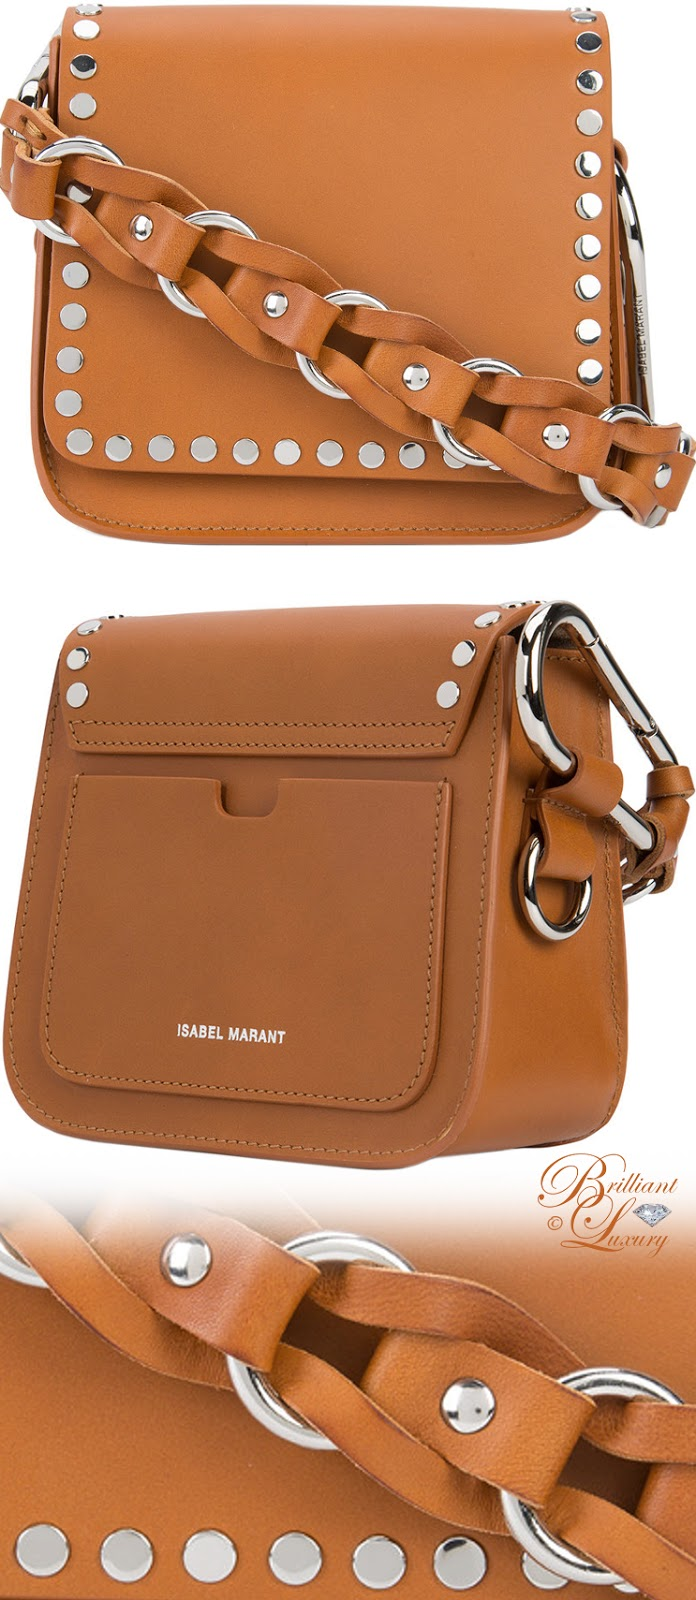 Brilliant Luxury ♦ Isabel Marant Minza Shoulder Bag